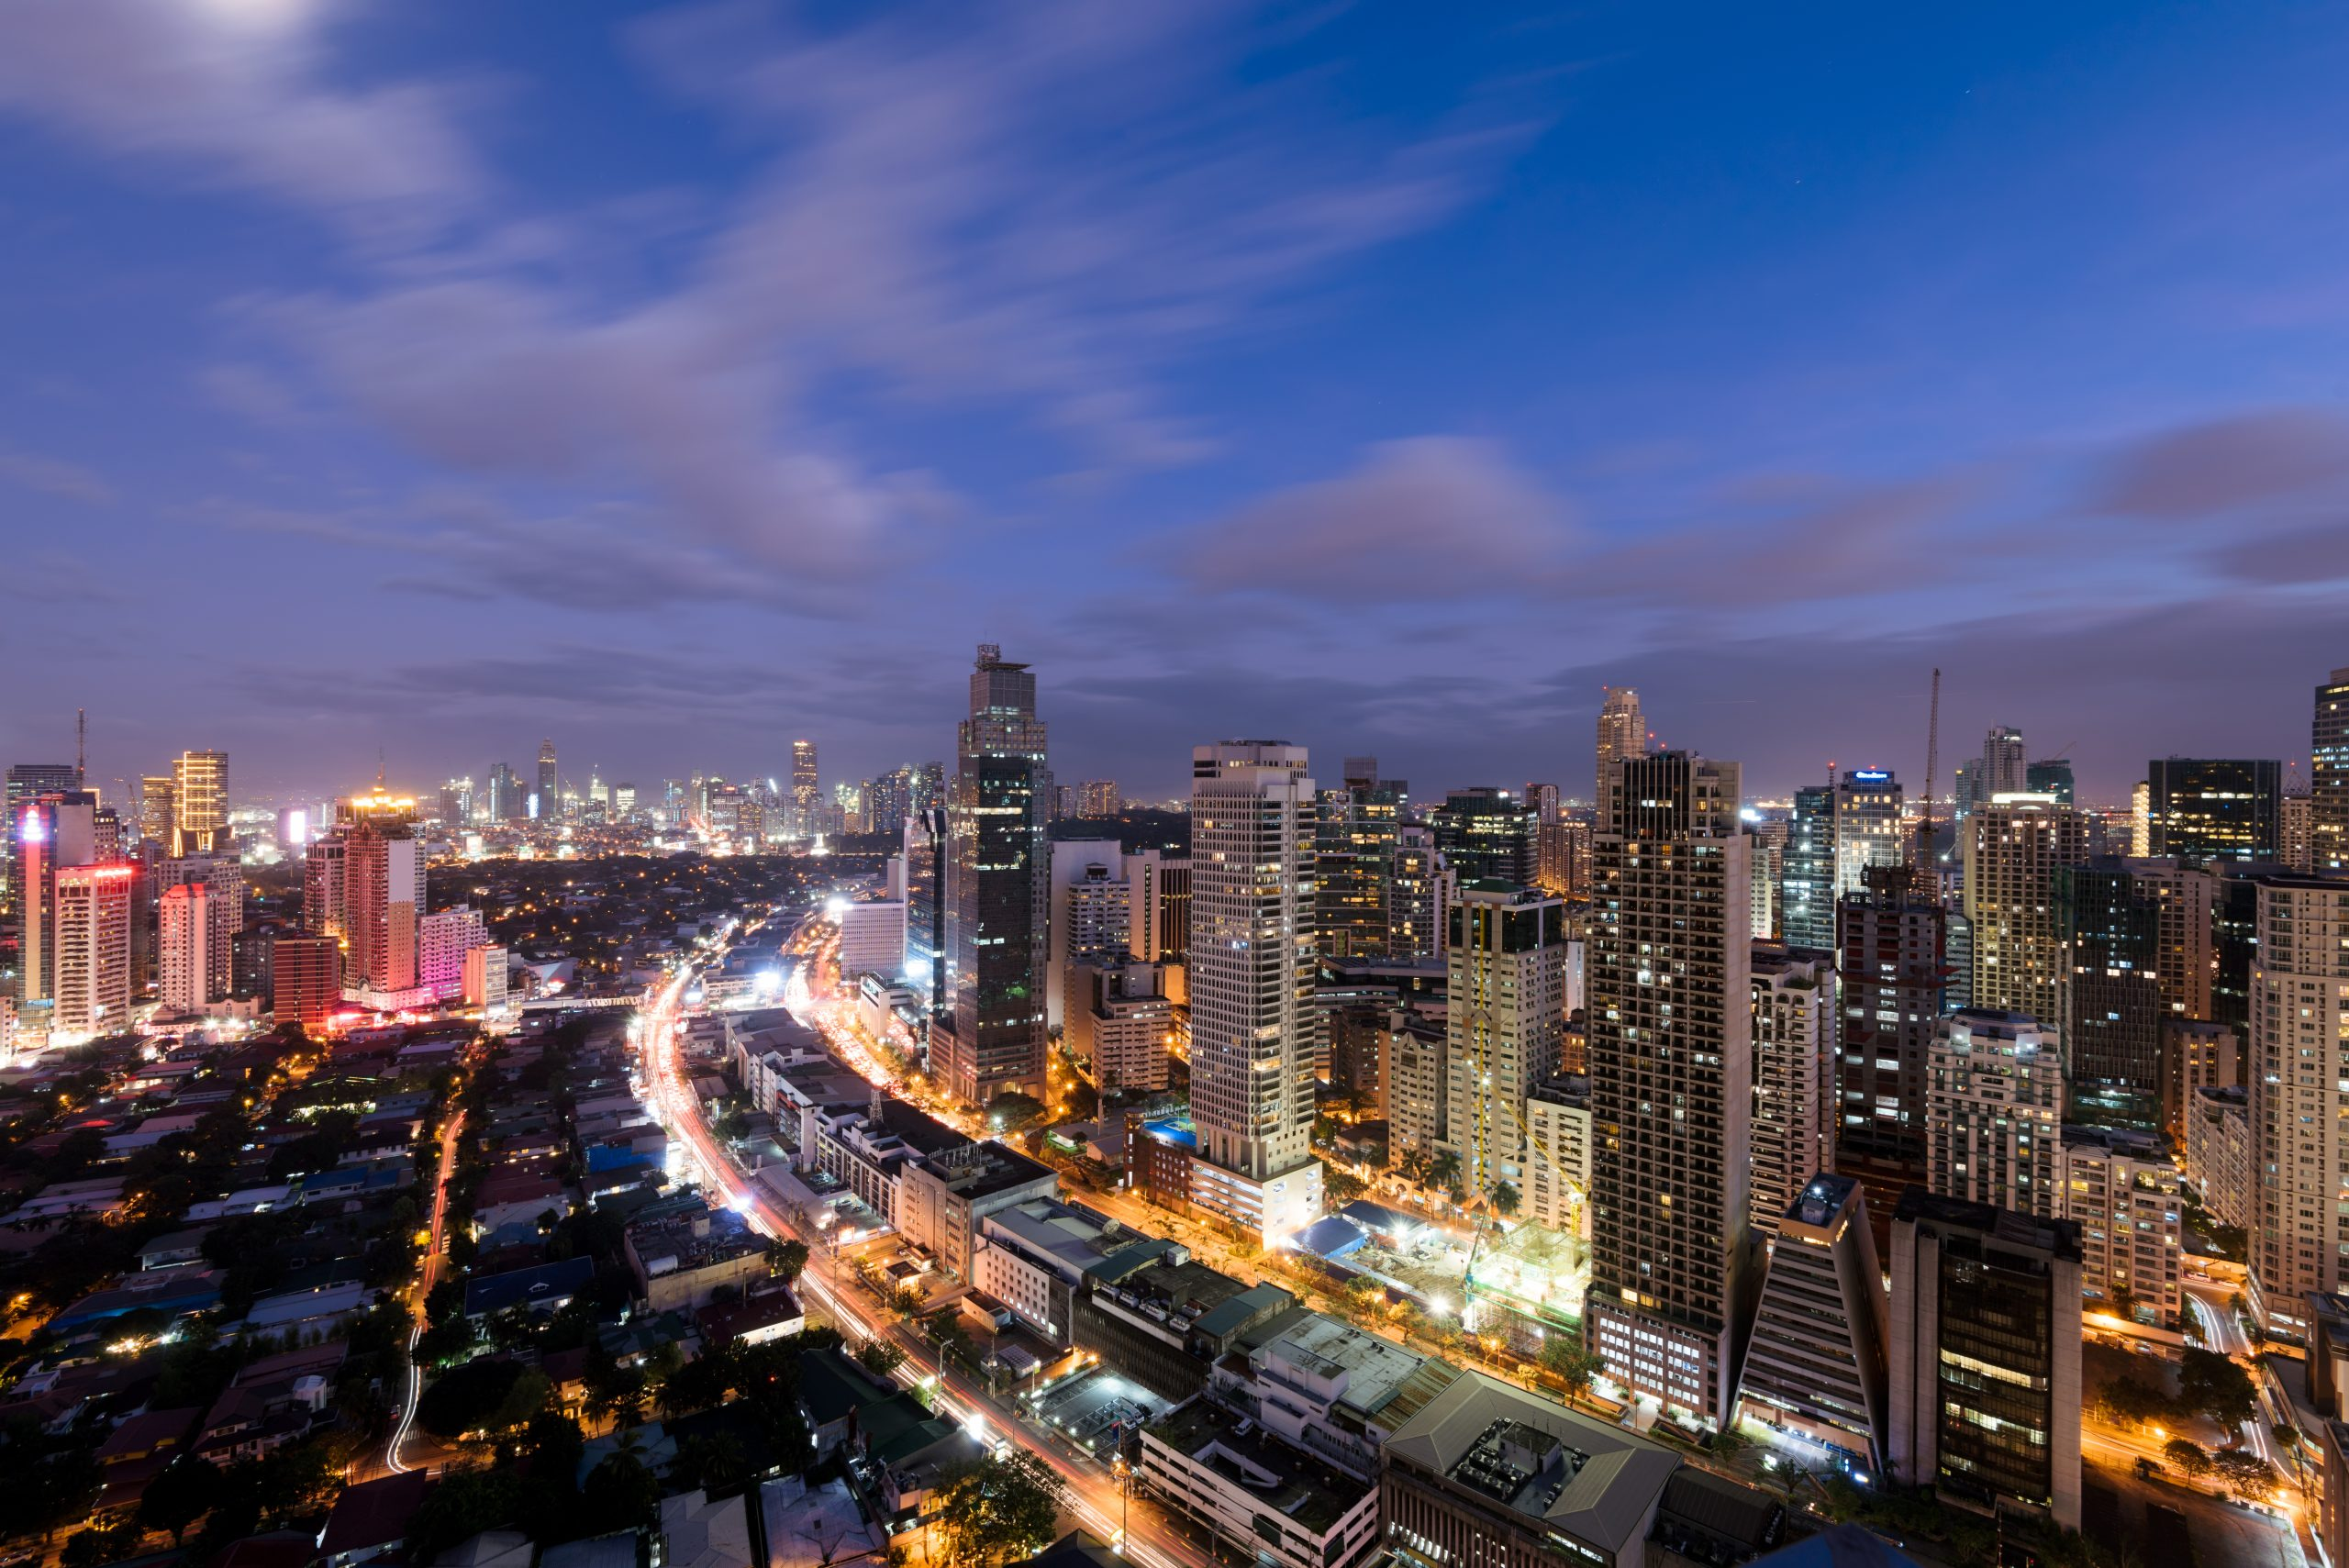 The Philippines Remains the World's Top Contact Center Destination